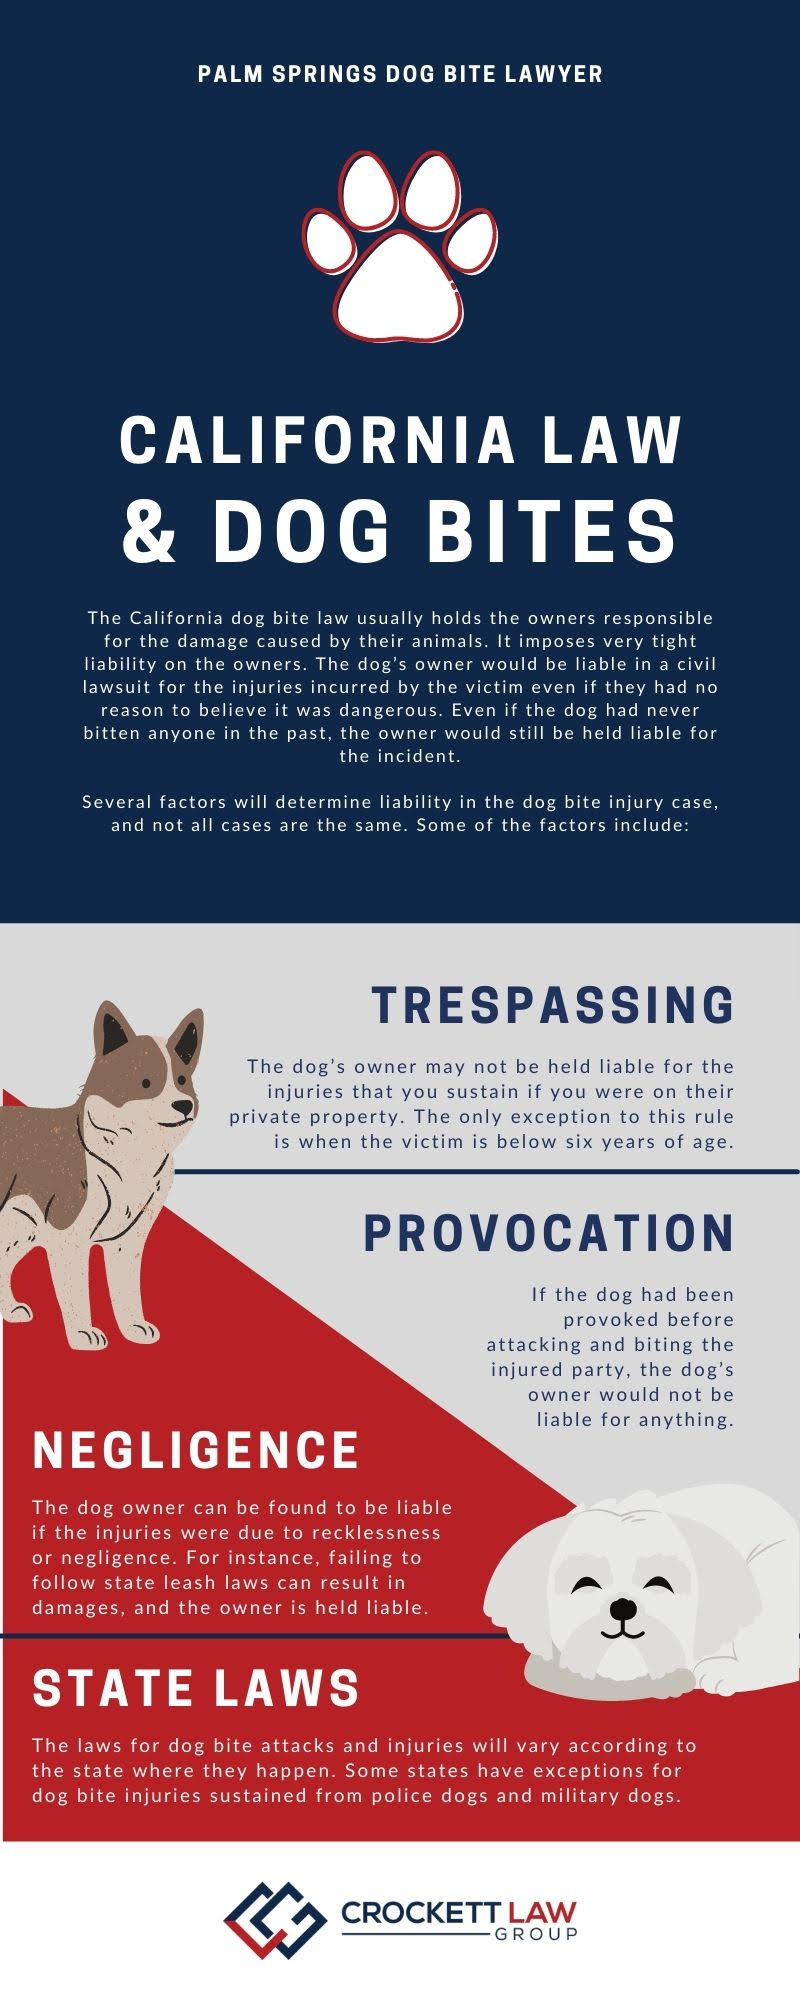 Palm Spring Dog Bite Accident Lawyer Infographic